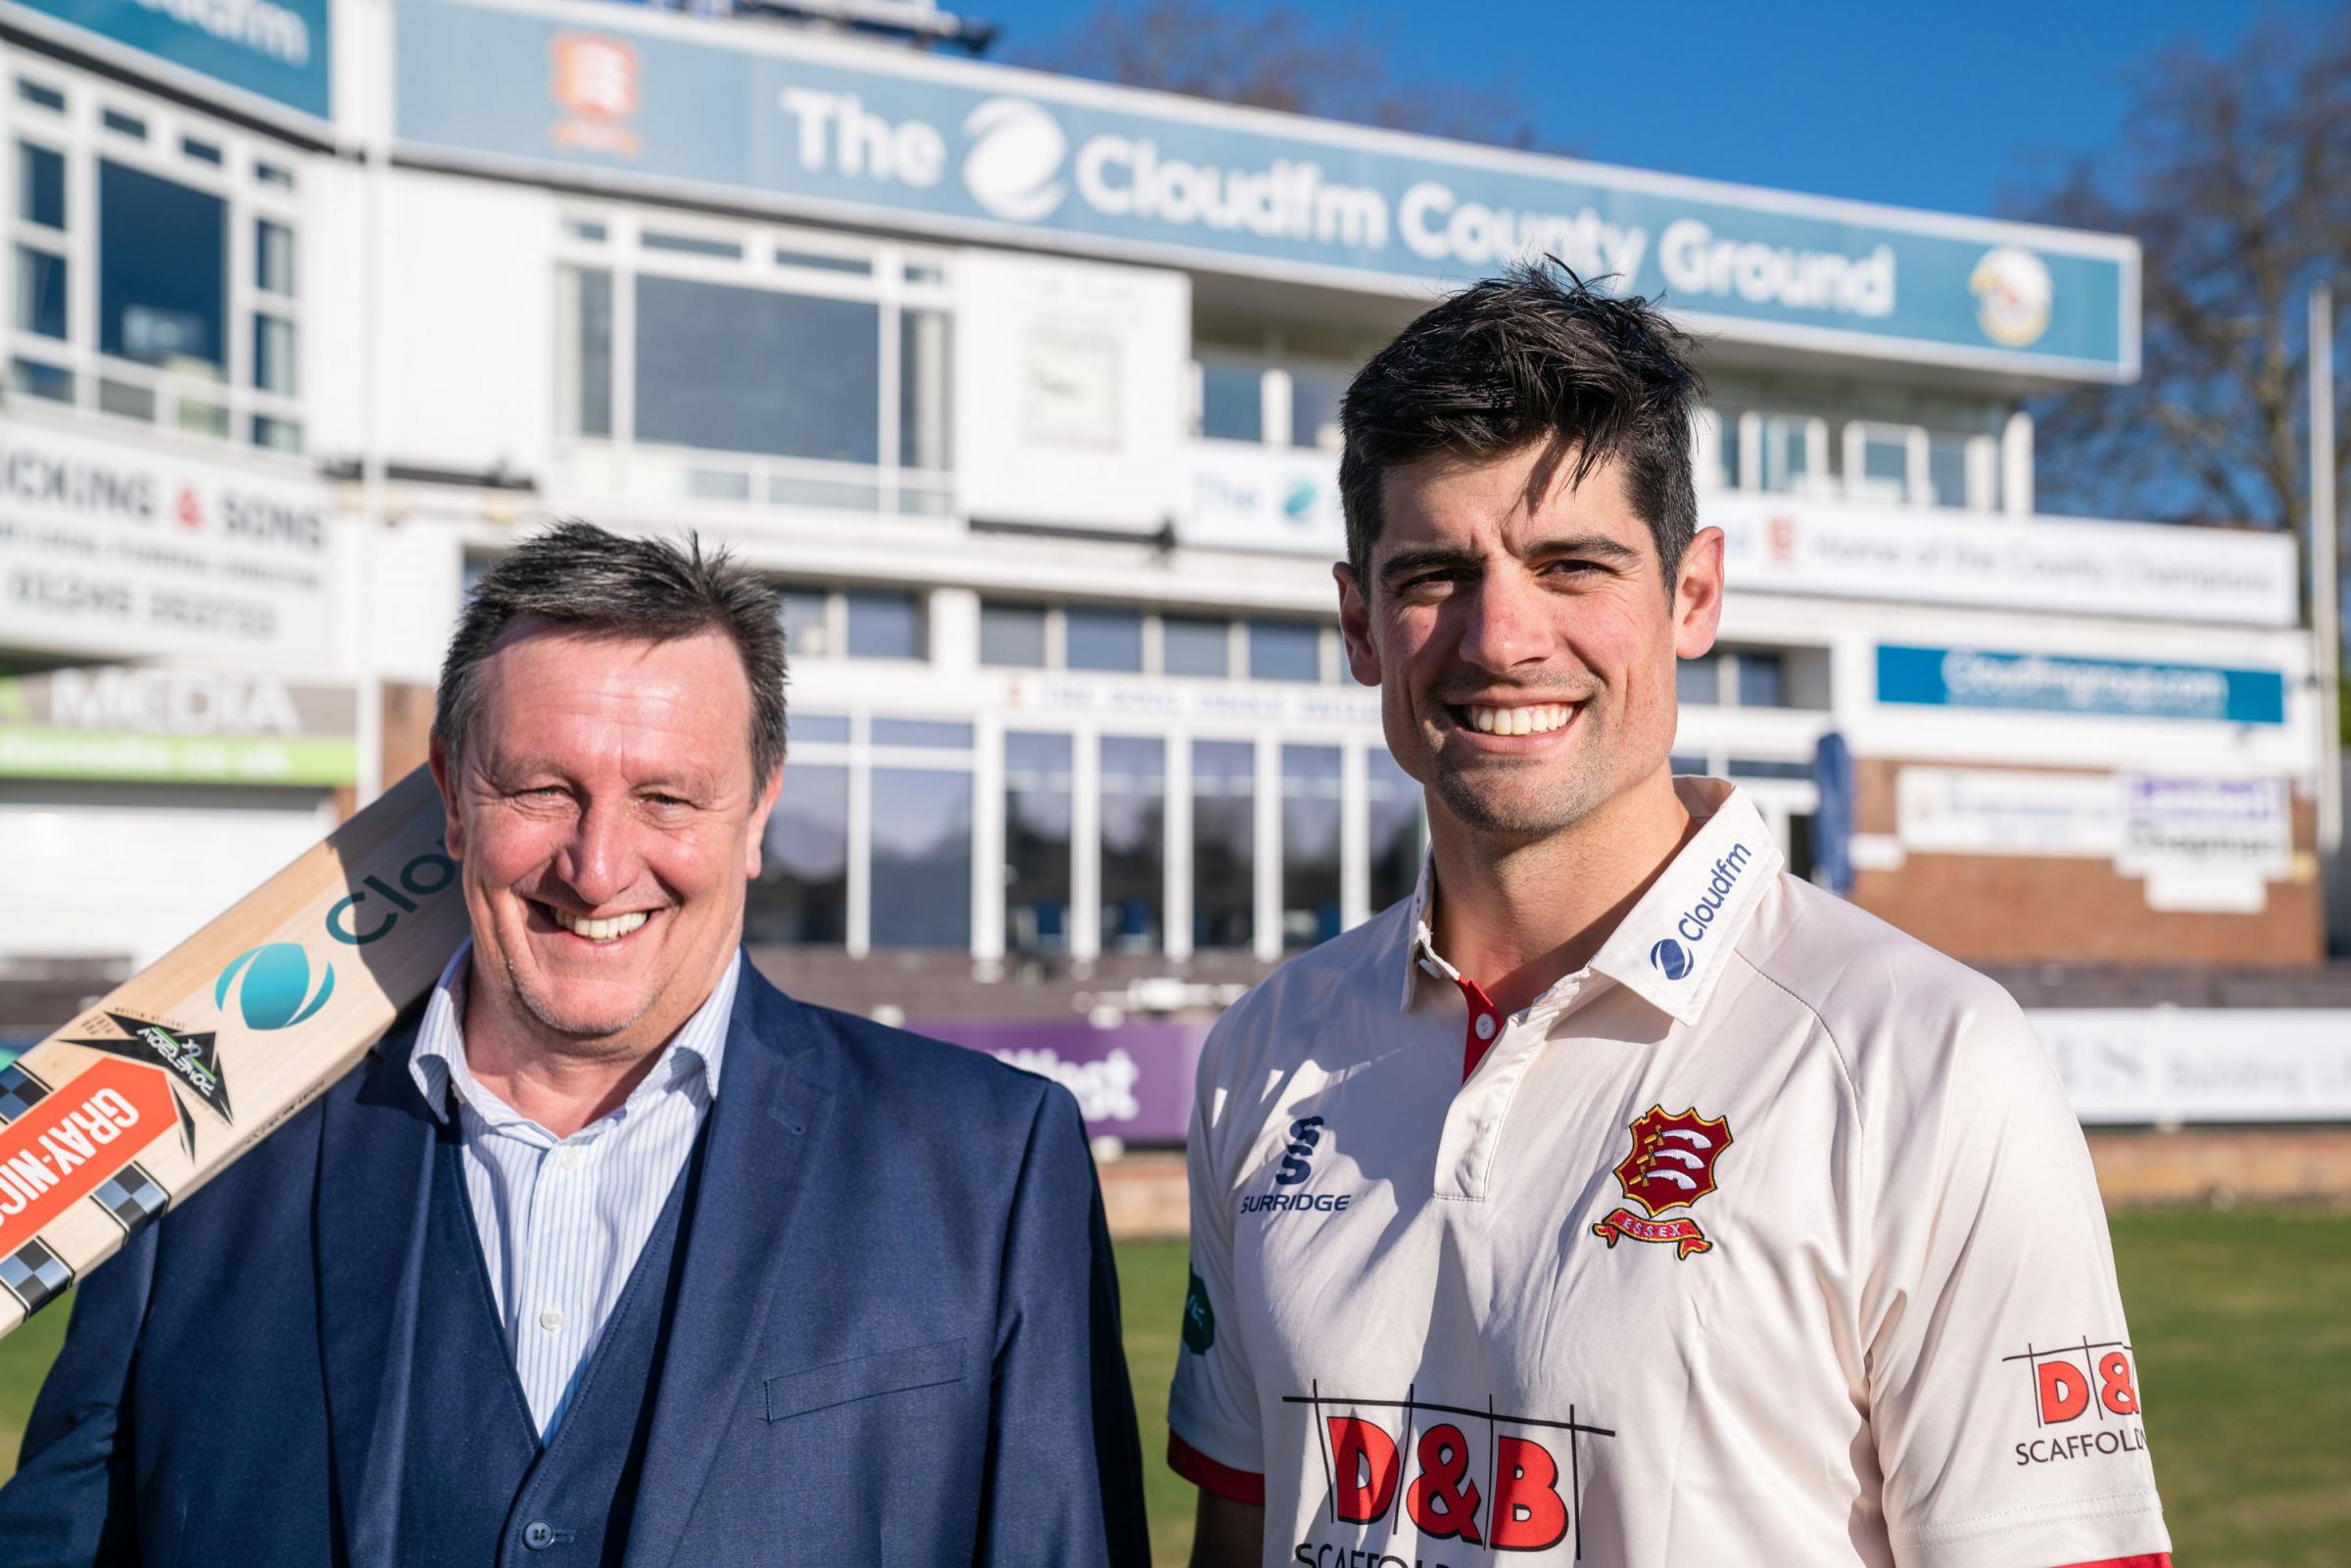 Jeff Dewing and Alastair Cook